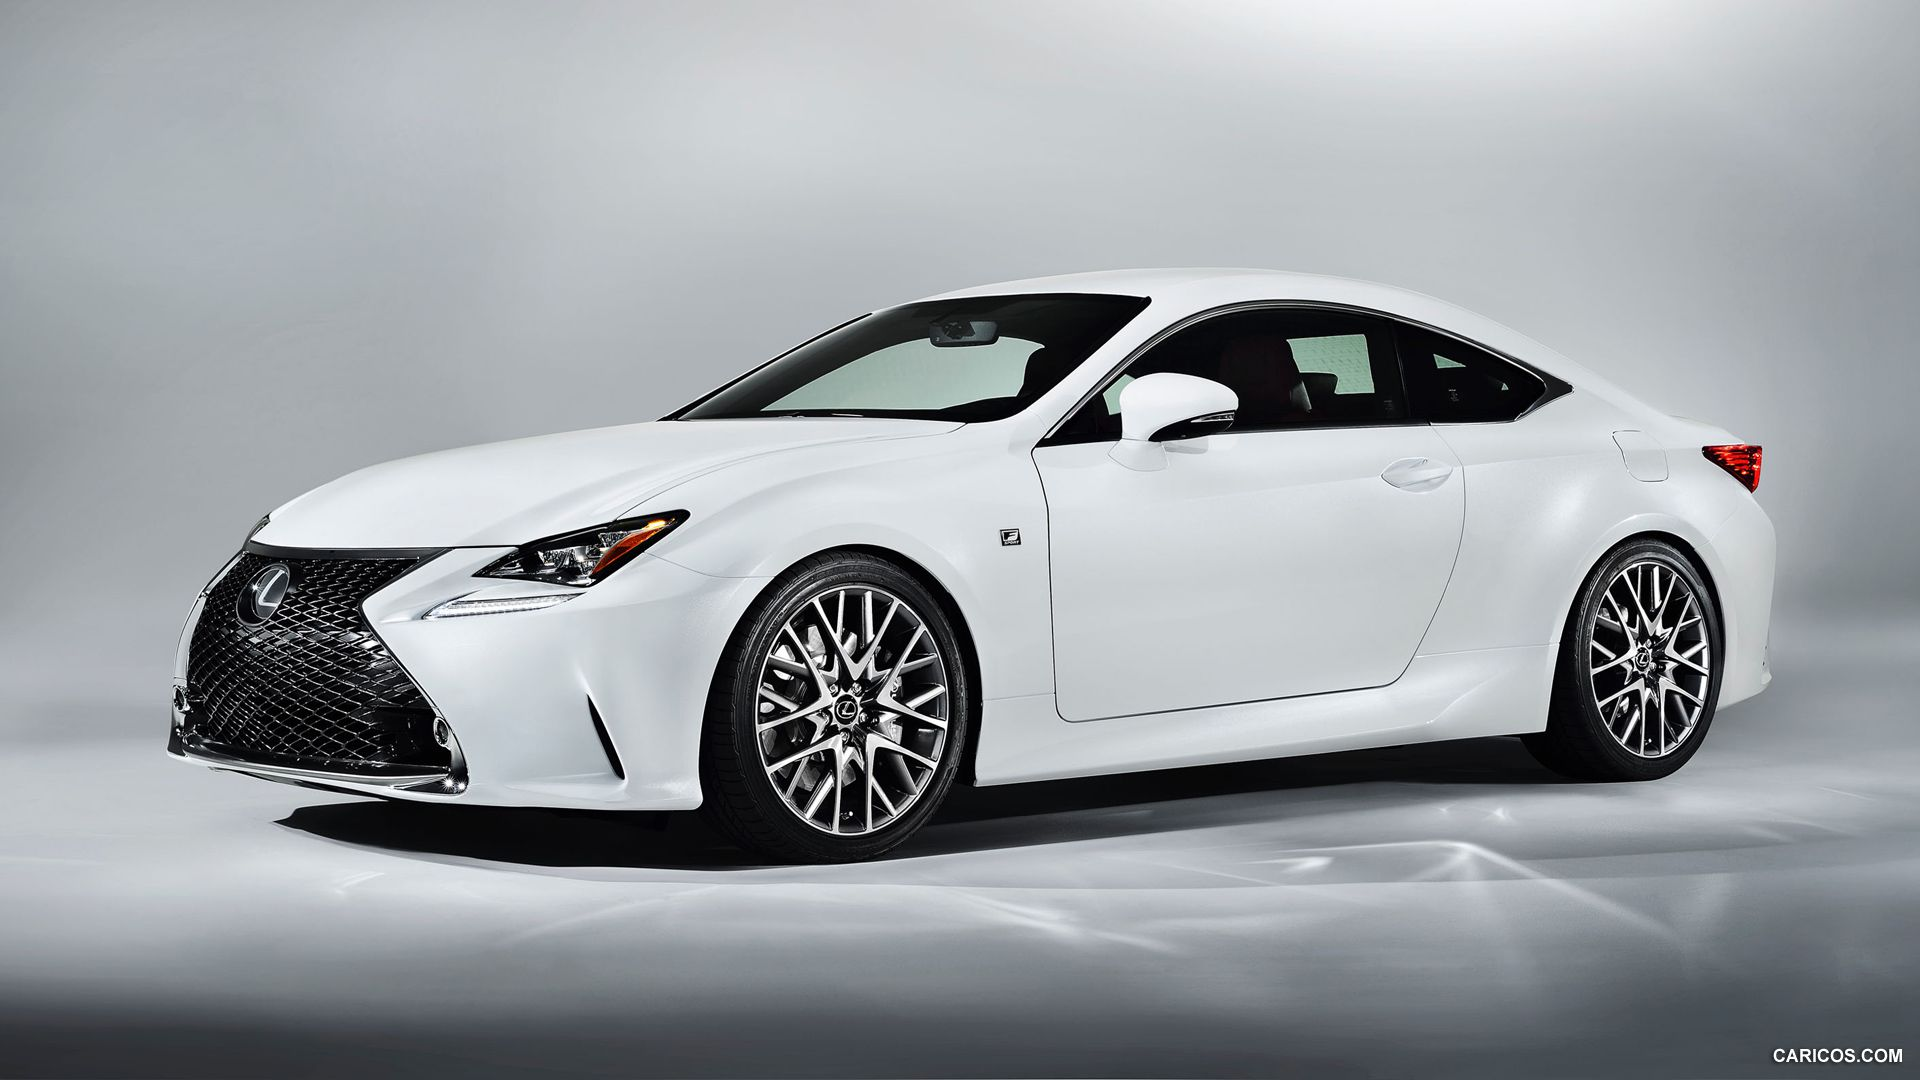 Lexus RC Lexus cars, New lexus, Sports car